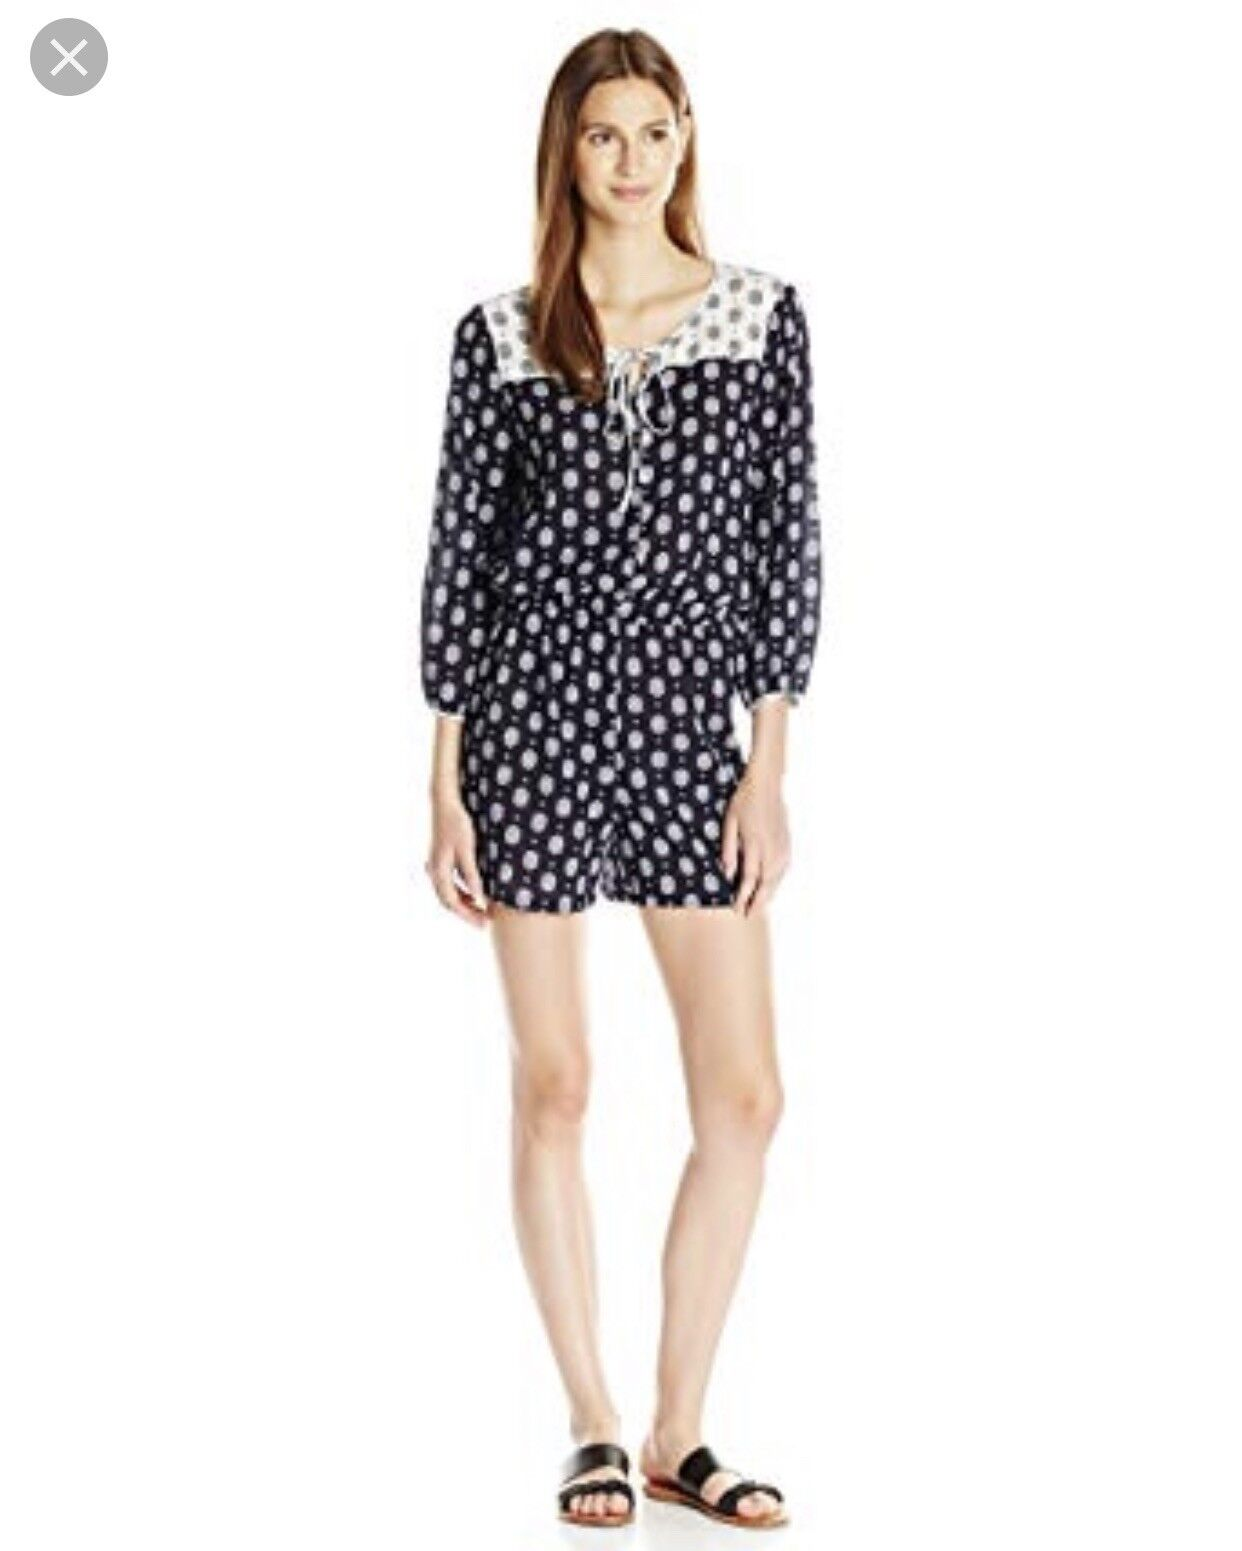 NWT Two by Vince Camuto Crinkled Foulard Print Keyhole RomperLarge Navy White